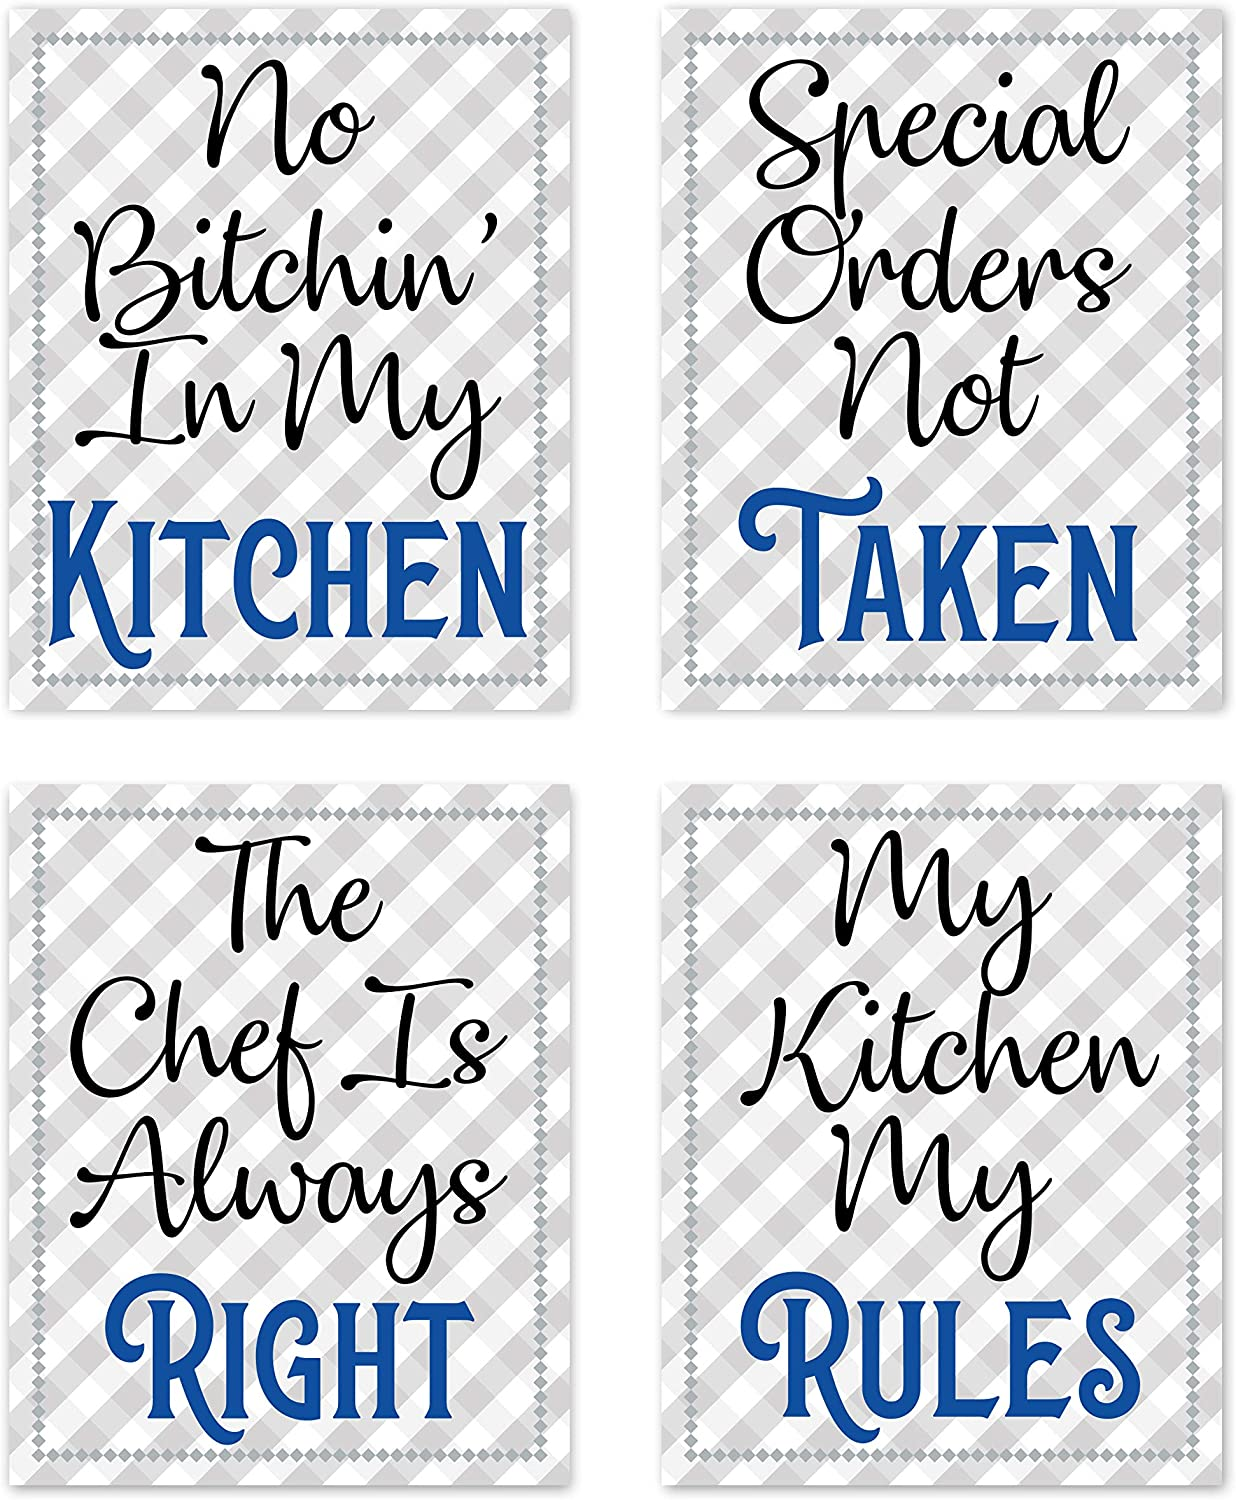 """Retro Vintage Inspirational Rules Wall Art for Dining Room Kitchen Cafe and Restaurant Decor Blue Black Gray and White Prints Posters Signs Sets Home Decorations Funny Sayings Quotes No Bitchin' In My Kitchen Unframed (Set of 4) 8""""x10"""""""